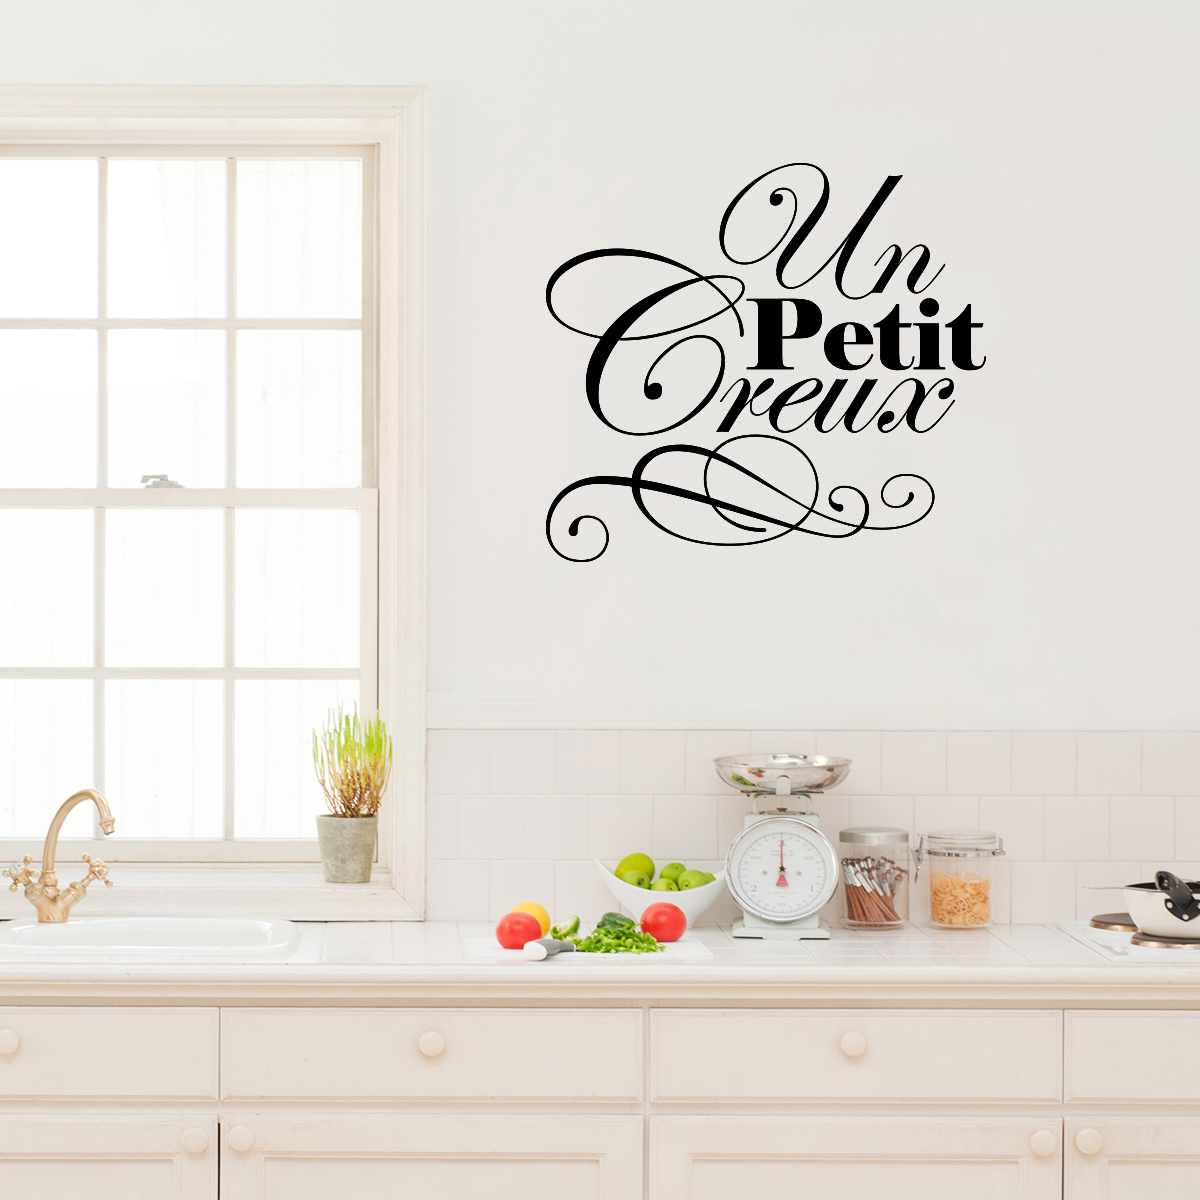 sticker citation cuisine un petit creux stickers cuisine textes et recettes ambiance sticker. Black Bedroom Furniture Sets. Home Design Ideas